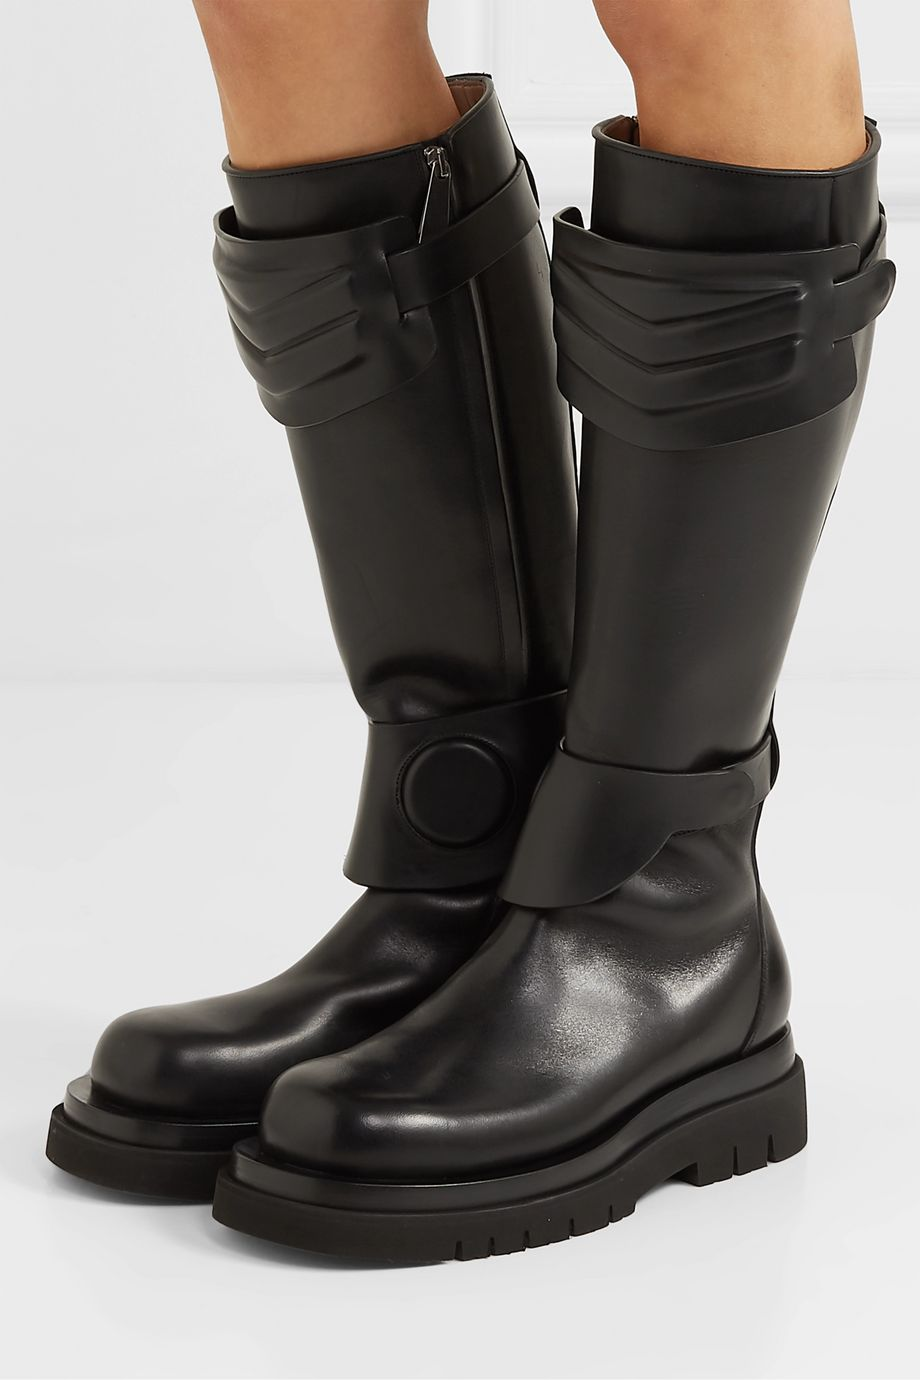 Bottega Veneta Leather knee boots